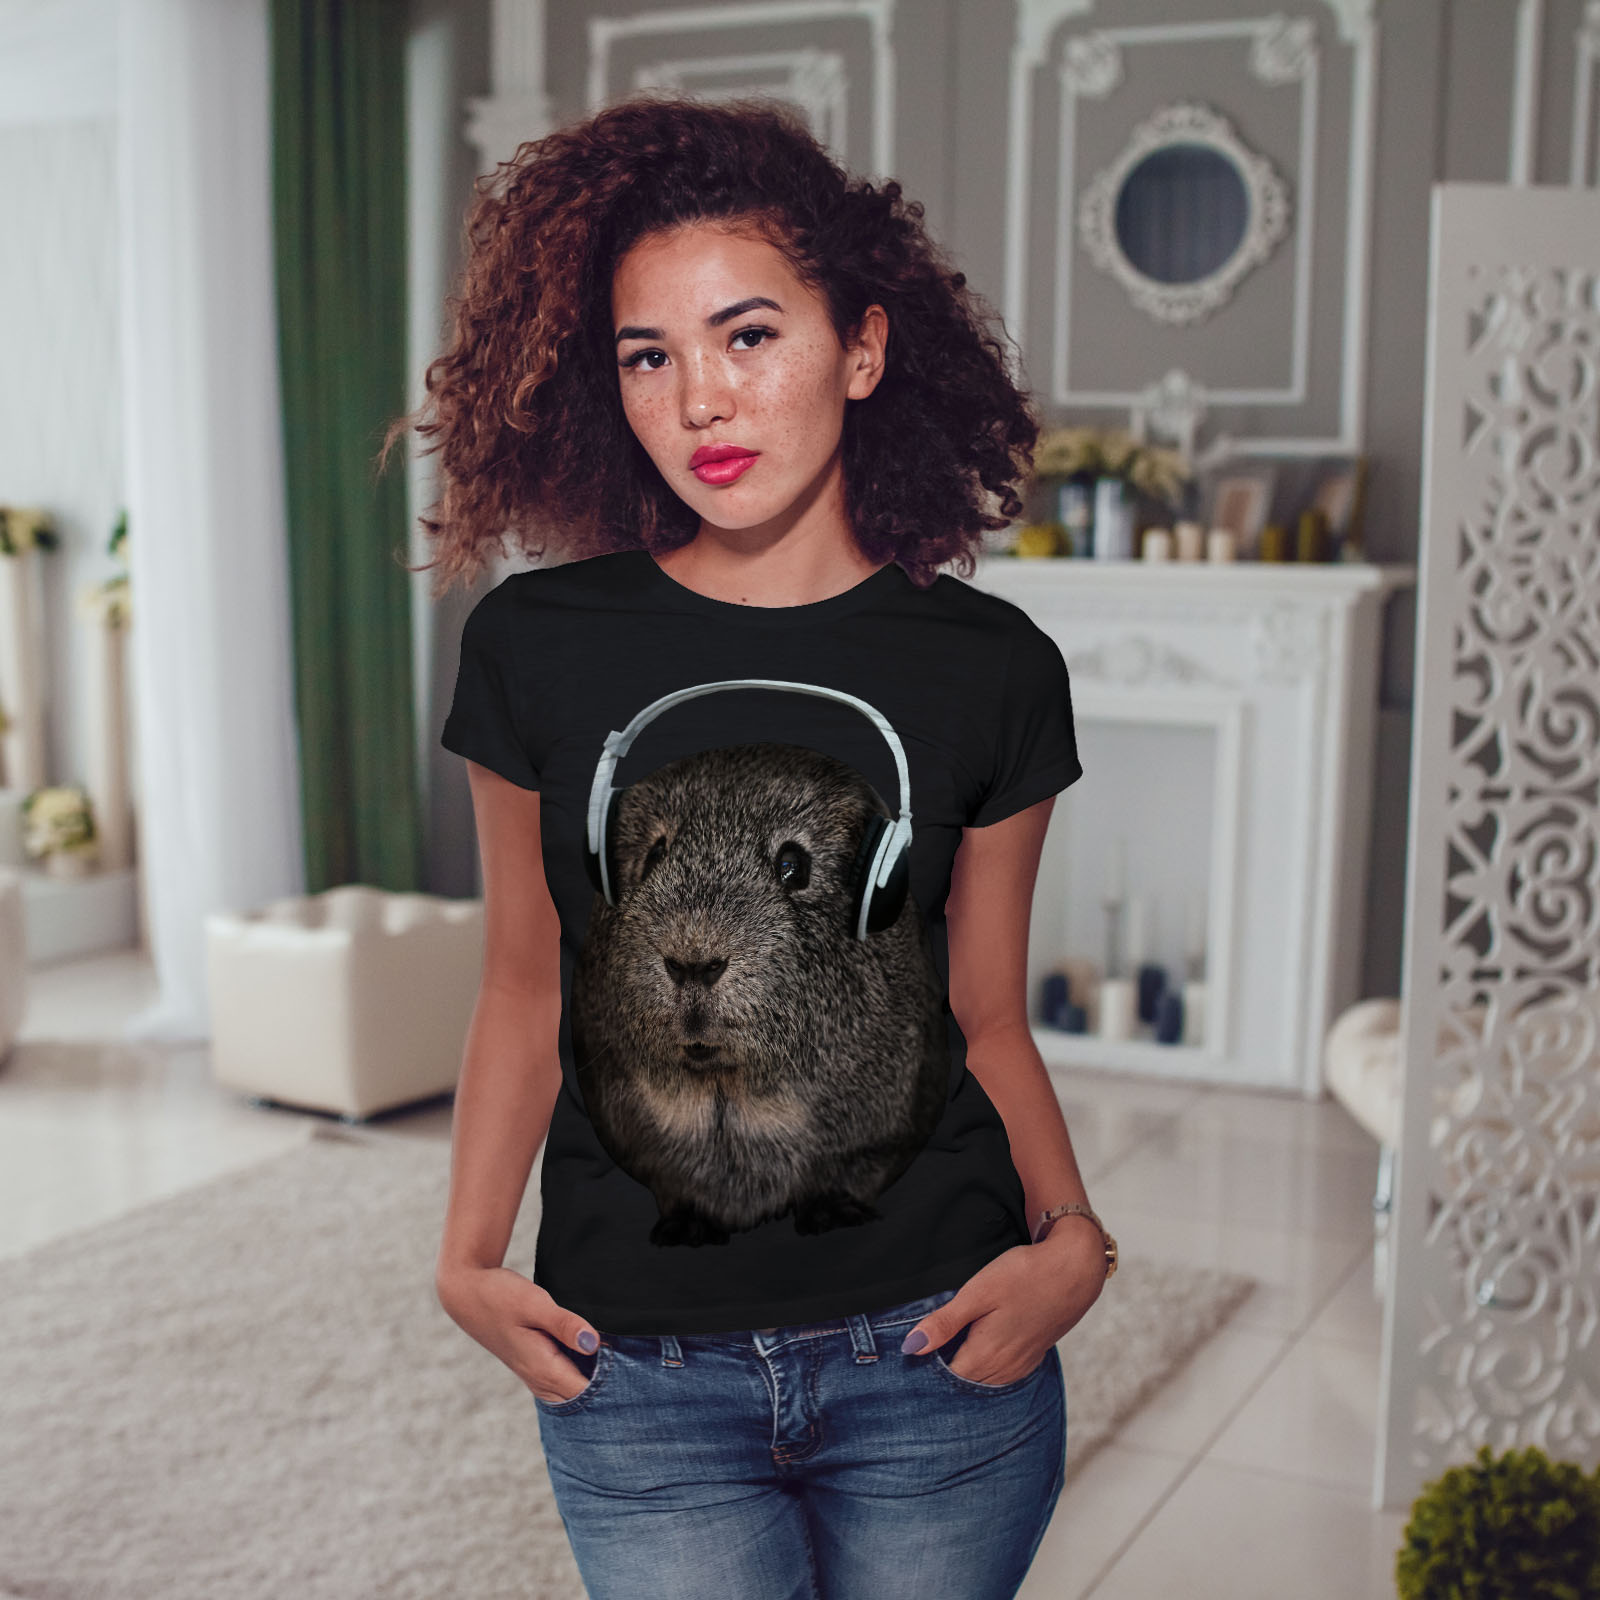 Wellcoda-Guinea-Maiale-BEAT-Divertente-T-shirt-da-donna-design-casual-Animale-Stampato-Tee miniatura 5